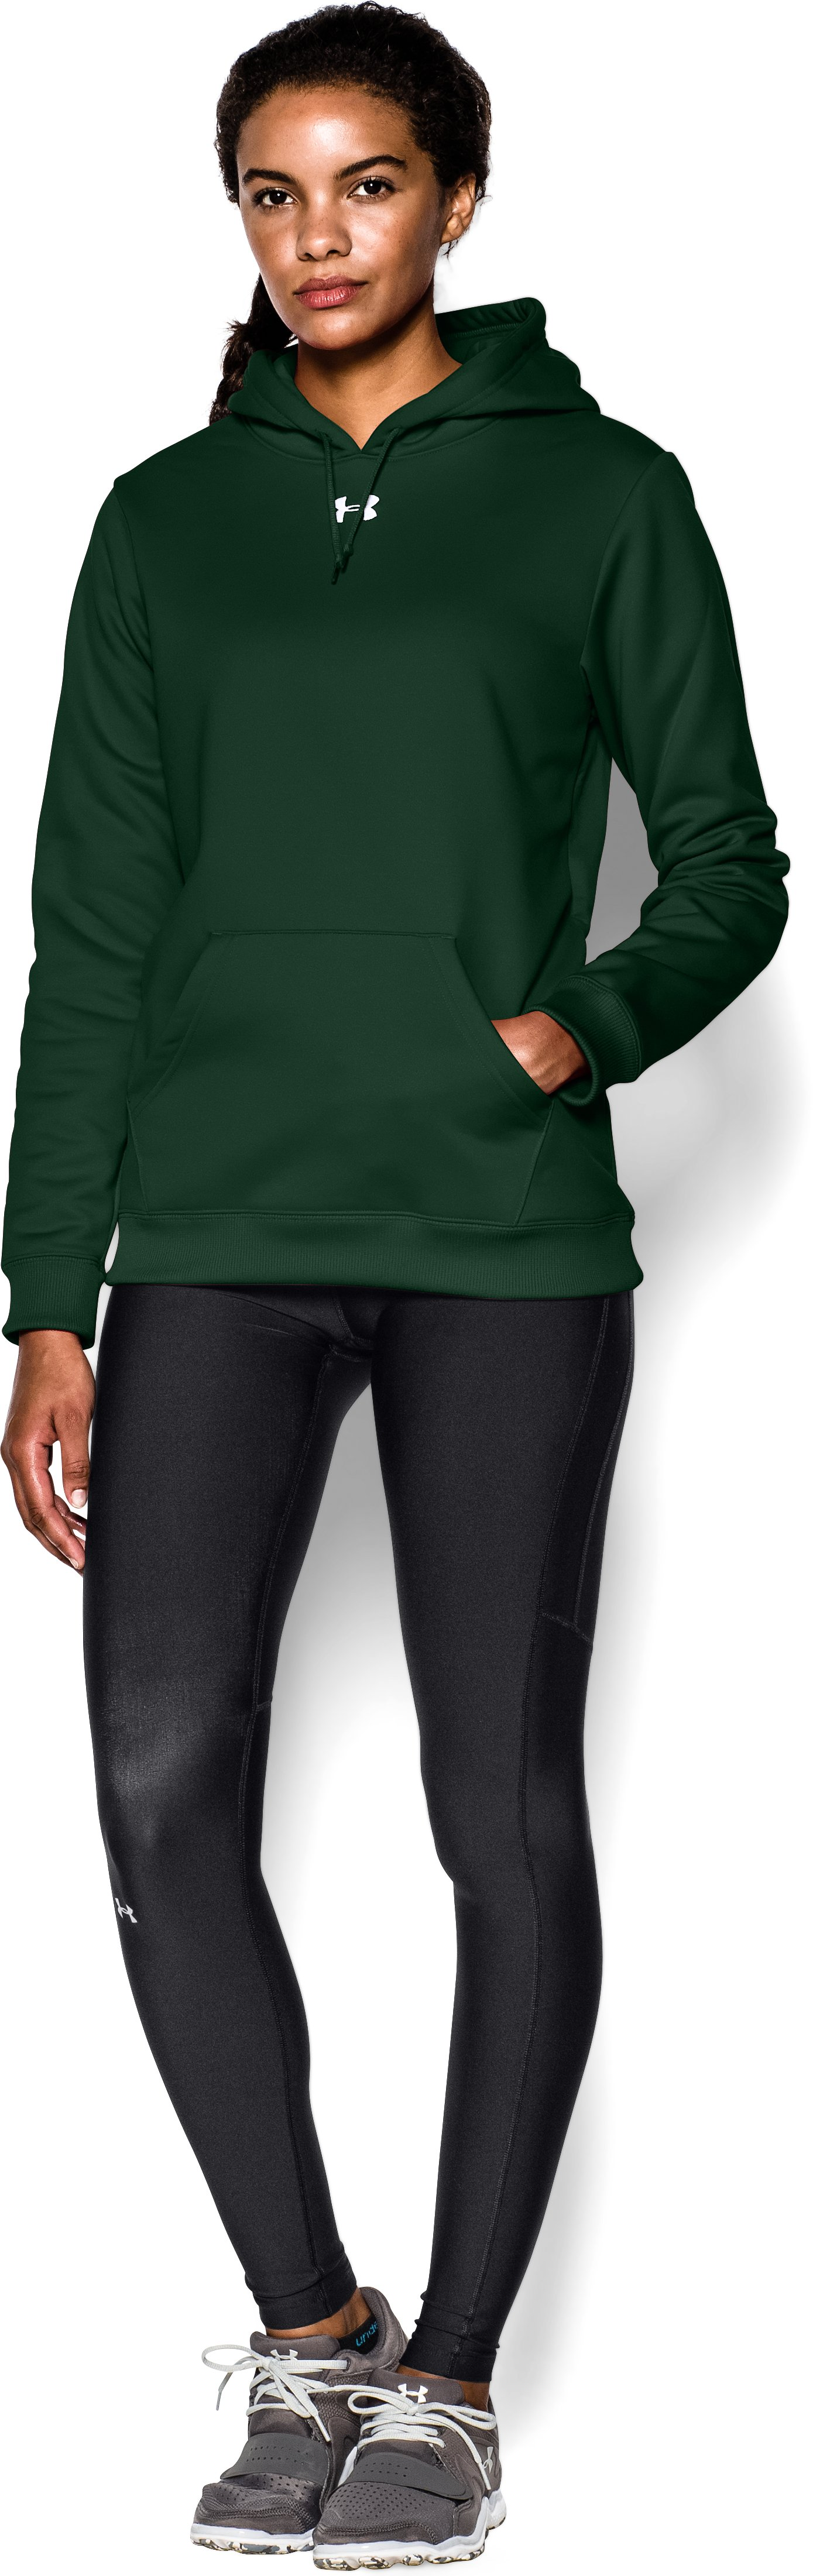 Women's Armour® Fleece Team Hoodie, Forest Green, Front